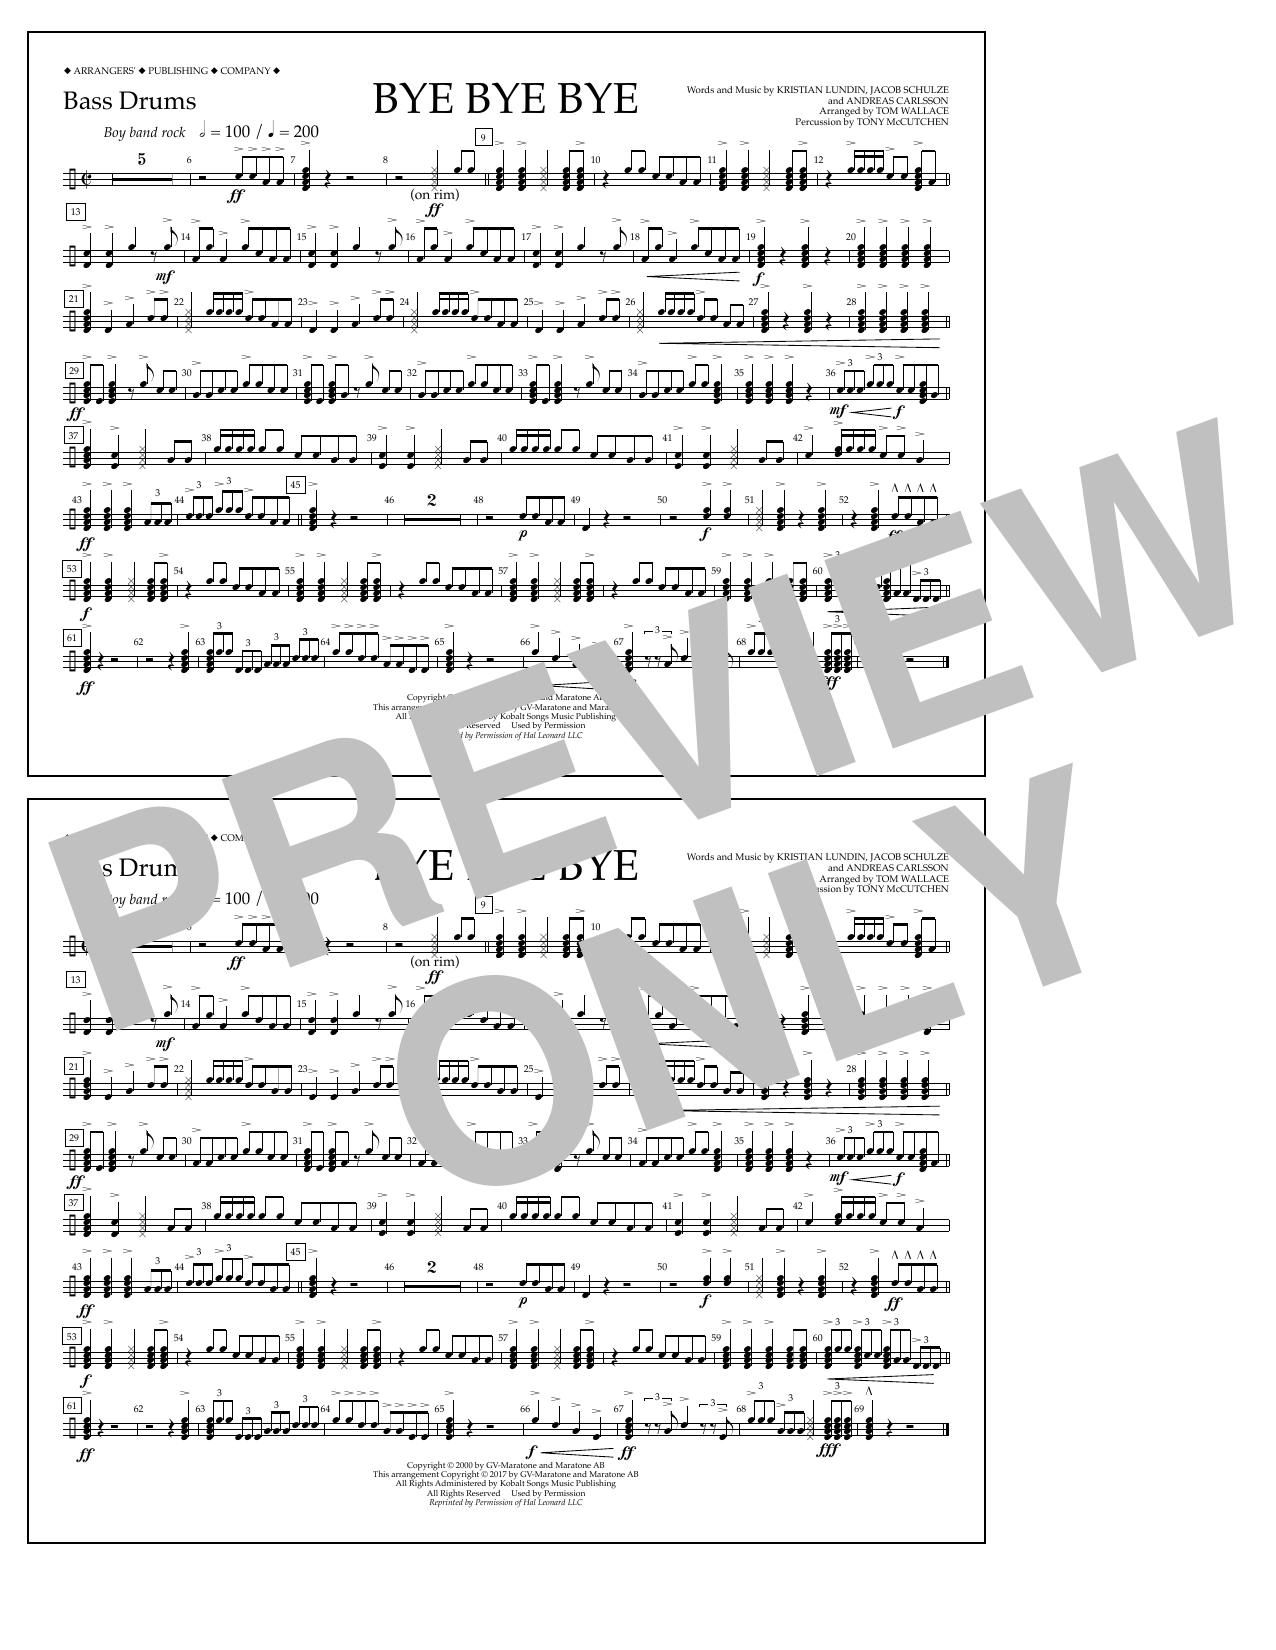 Bye Bye Bye - Bass Drums Sheet Music